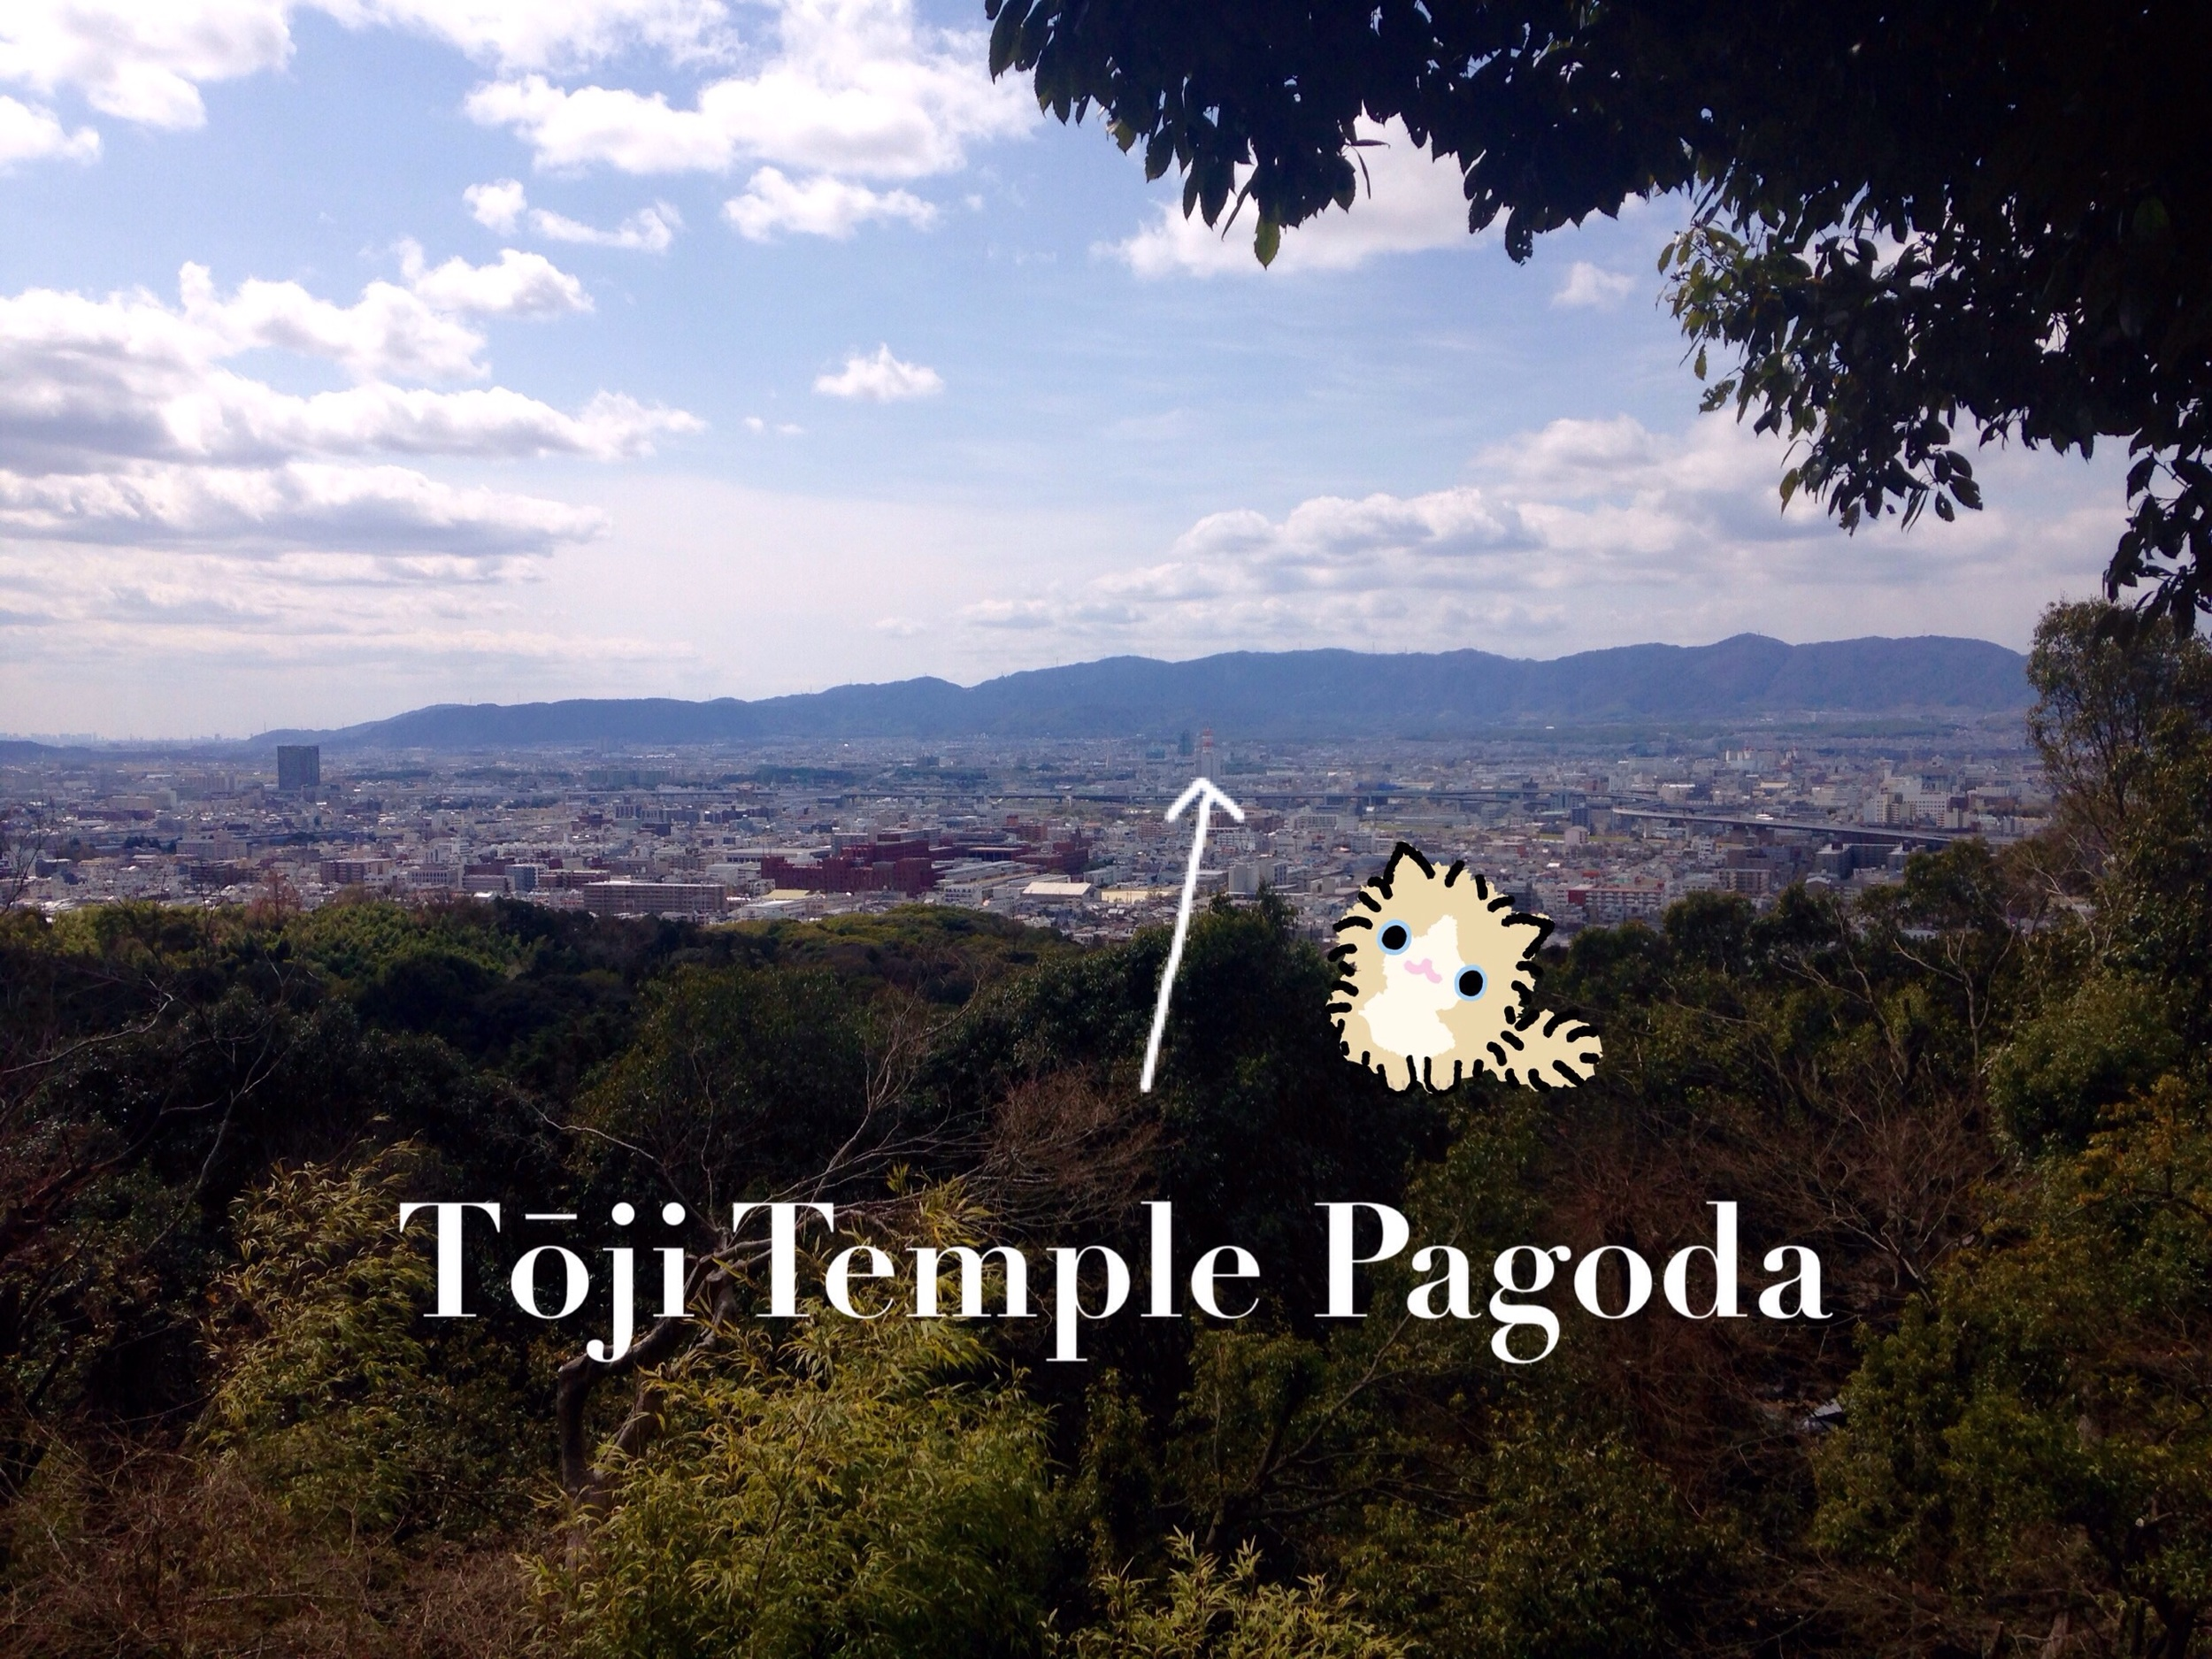 The view from halfway up is good enough for me and kitty. Also, I didn't make it to Tōji temple, but I could see it. Tōji temple houses the tallest wooden pagoda in Japan. Good enough.